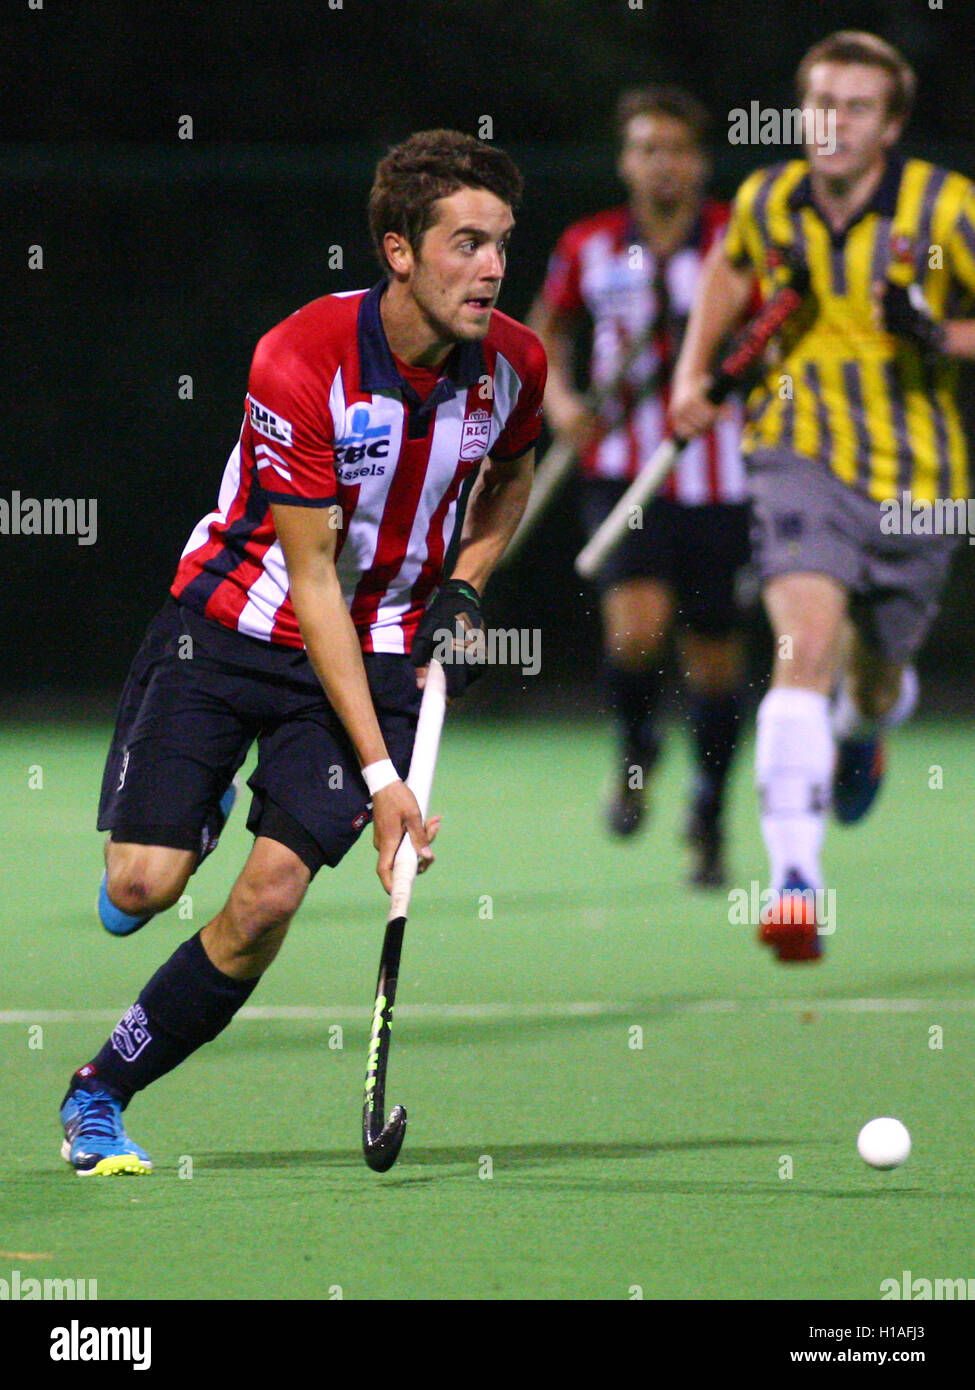 Uccle, Belgium 22.09.2016 Honor Men National League: Arthur Vrdussen in game action during the match Leopold-Wellington - Stock Image